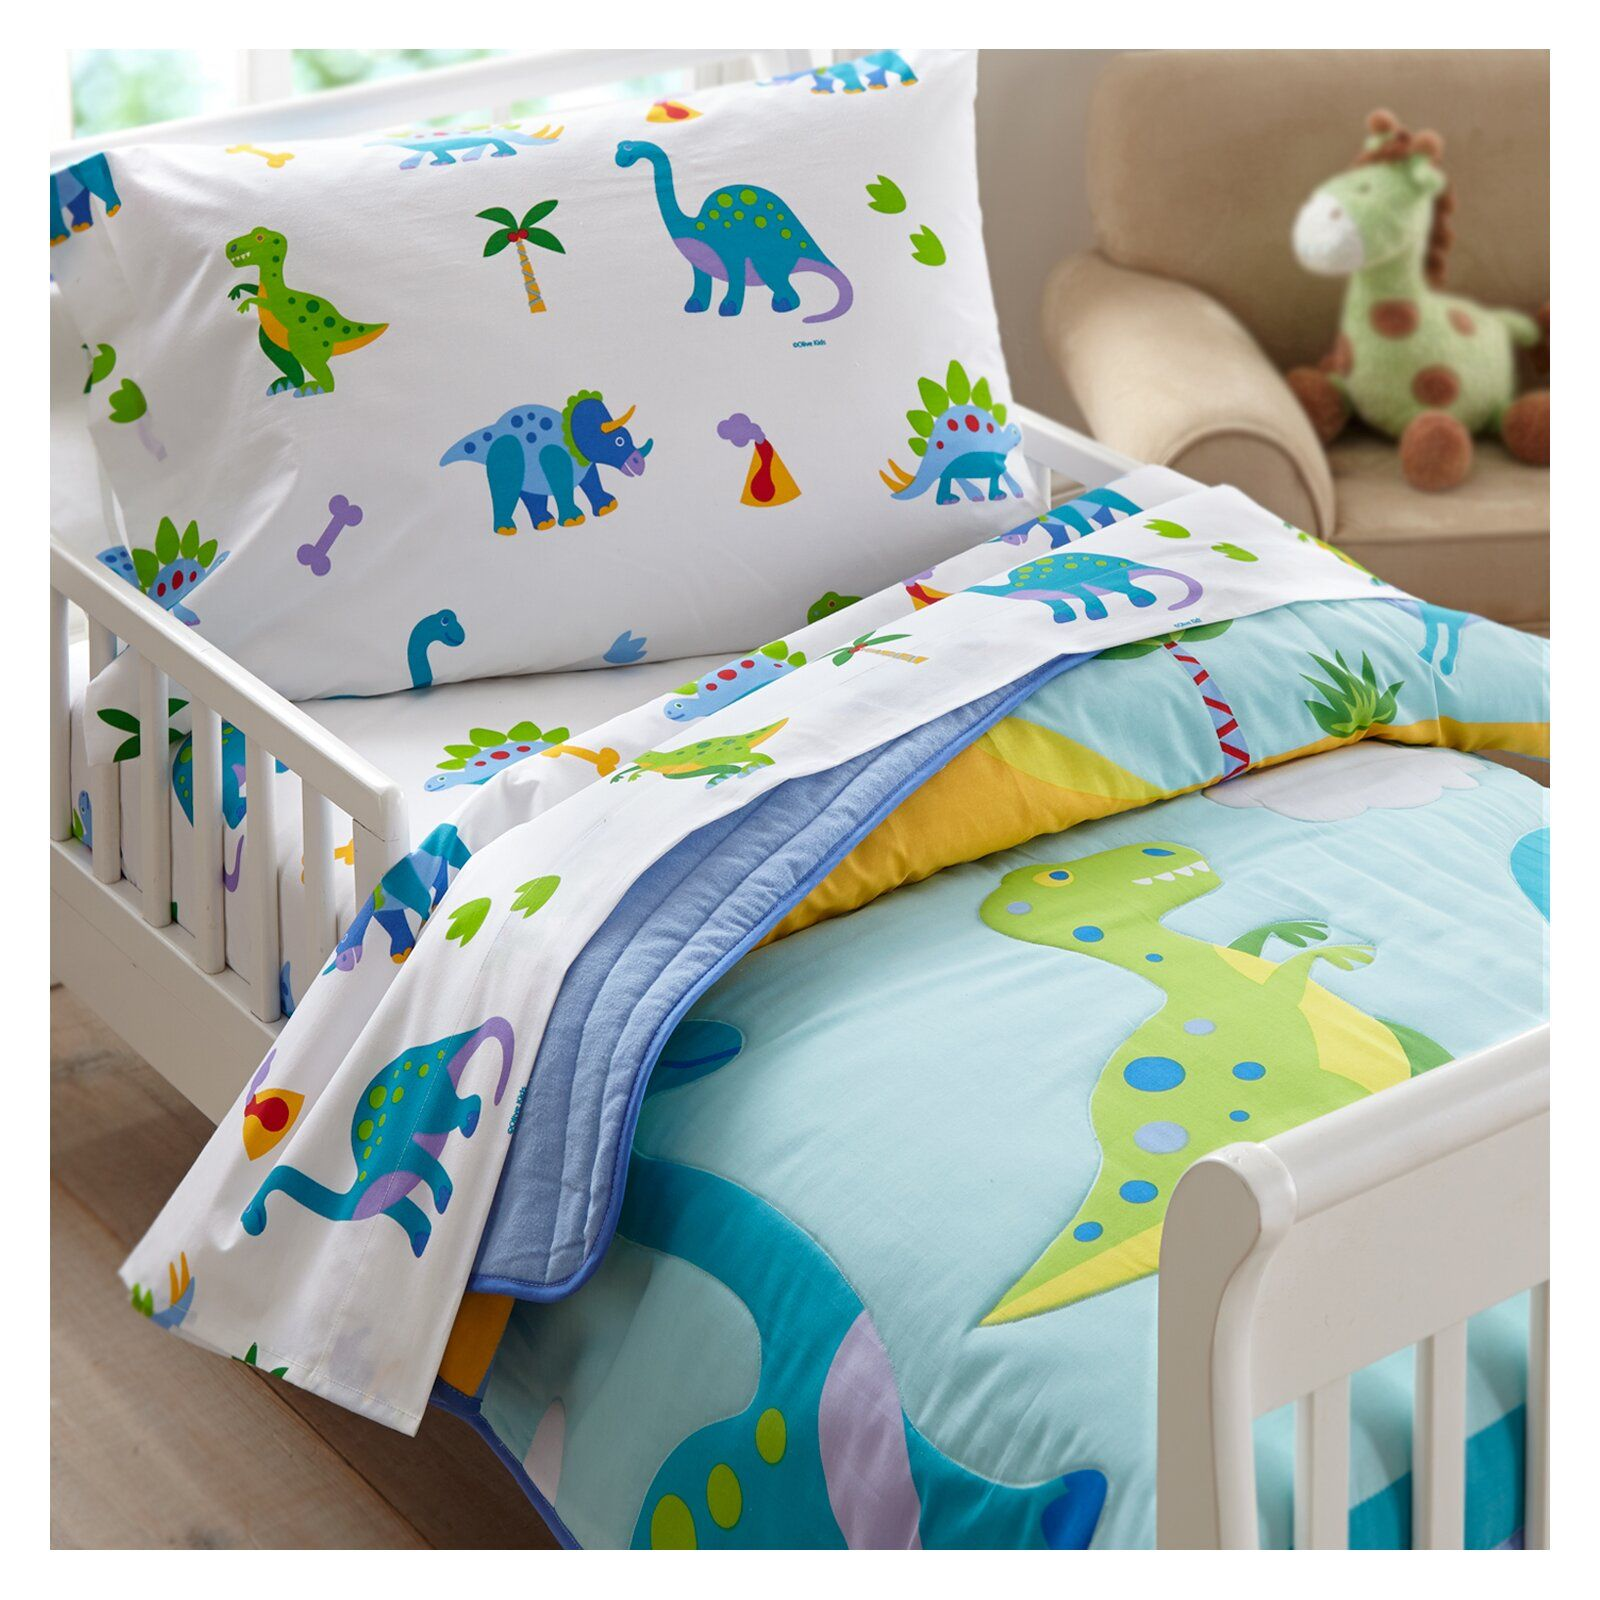 Olive Kids Dinosaur Land Toddler Comforter In 2020 Toddler Bed Set Toddler Bed Boy Dinosaur Toddler Bedding